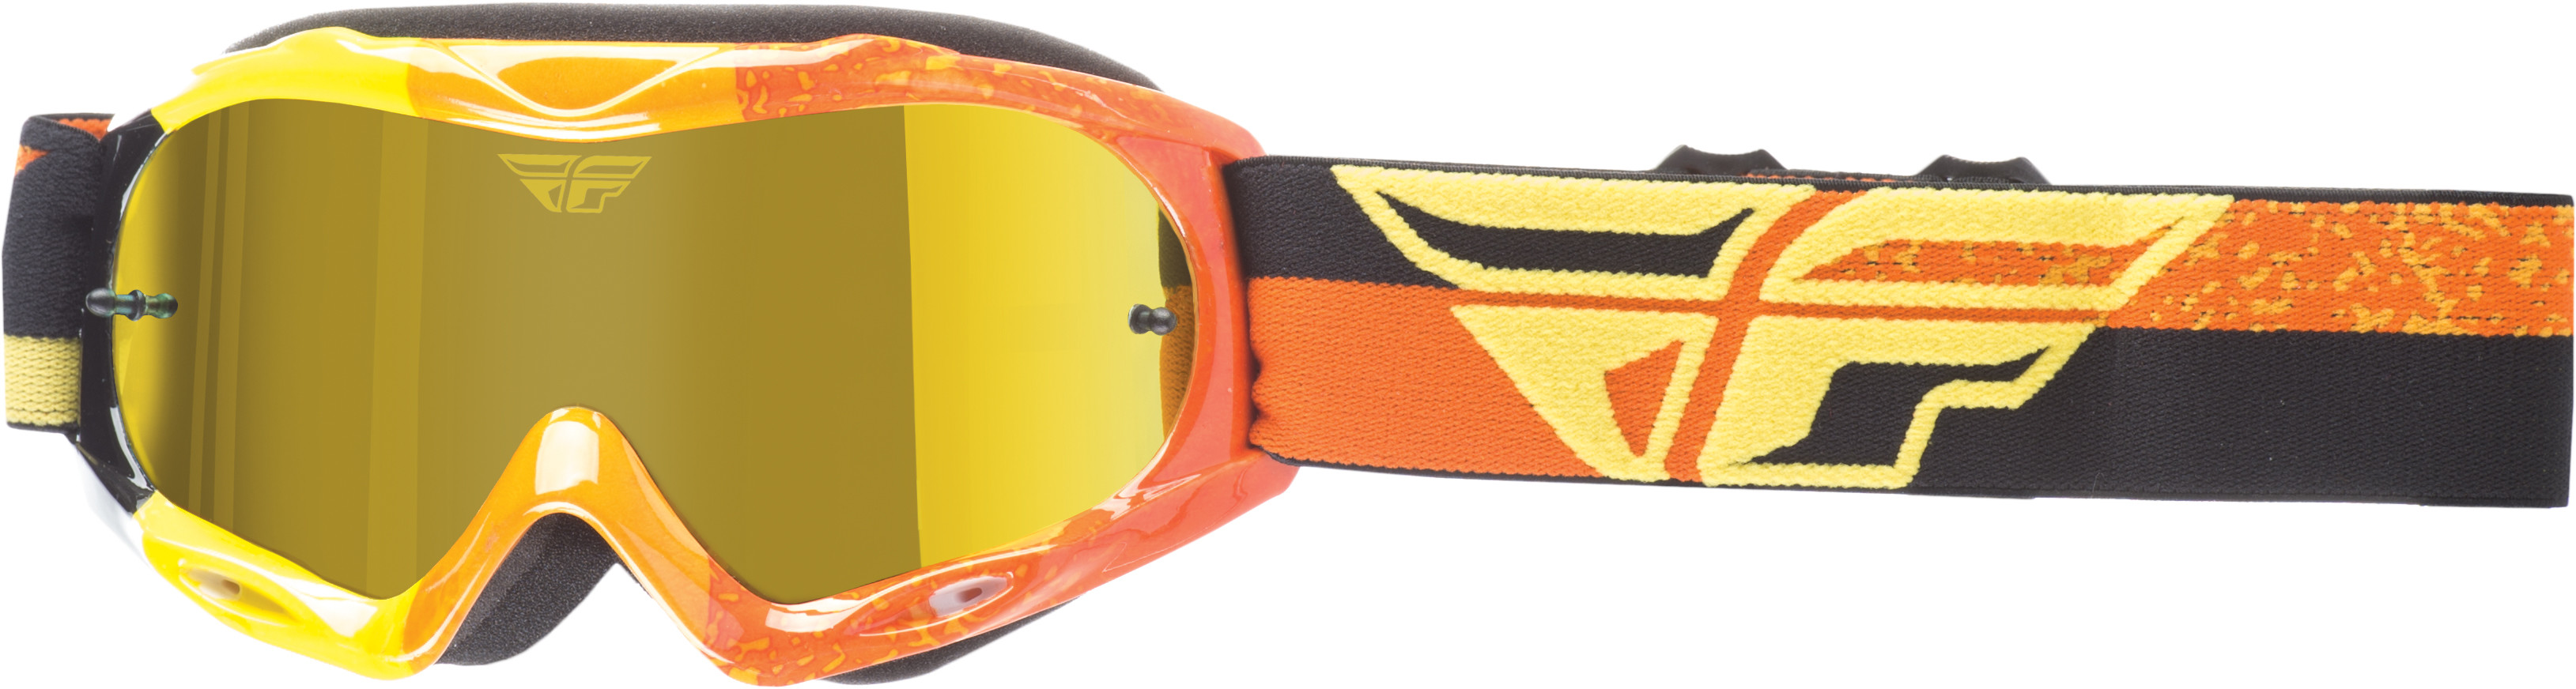 Zone Composite Youth Goggle Yellow/Orange/Black